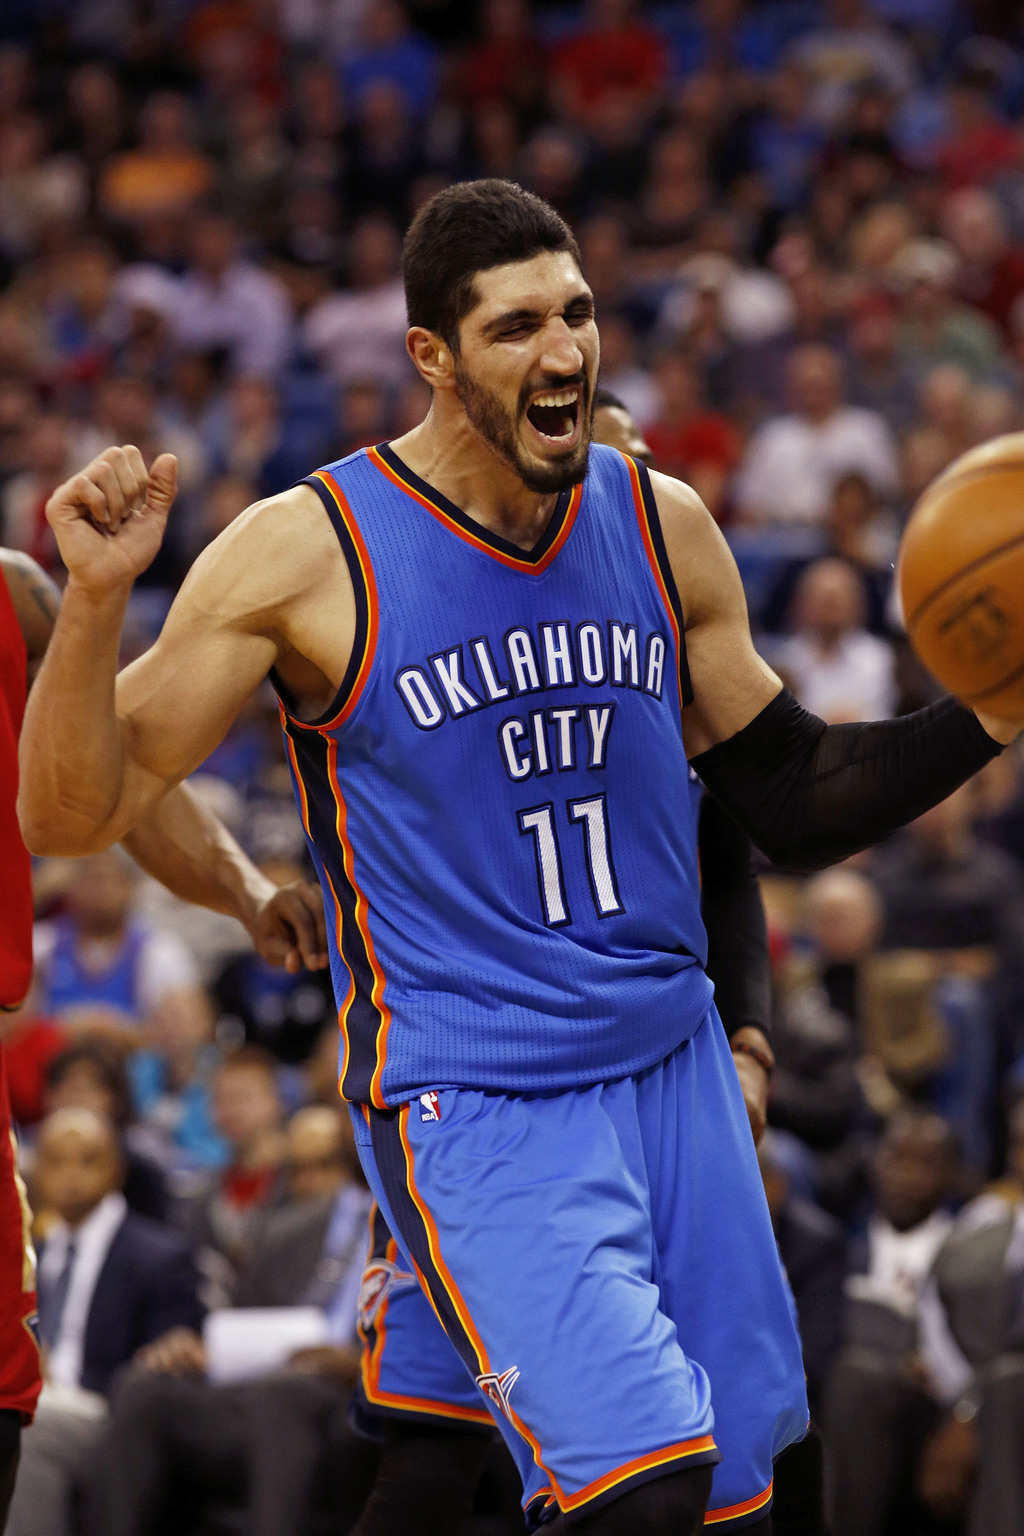 Oklahoma City Thunder center Enes Kanter reacts to his team making a basket against the New Orleans Pelicans during the first half of a...